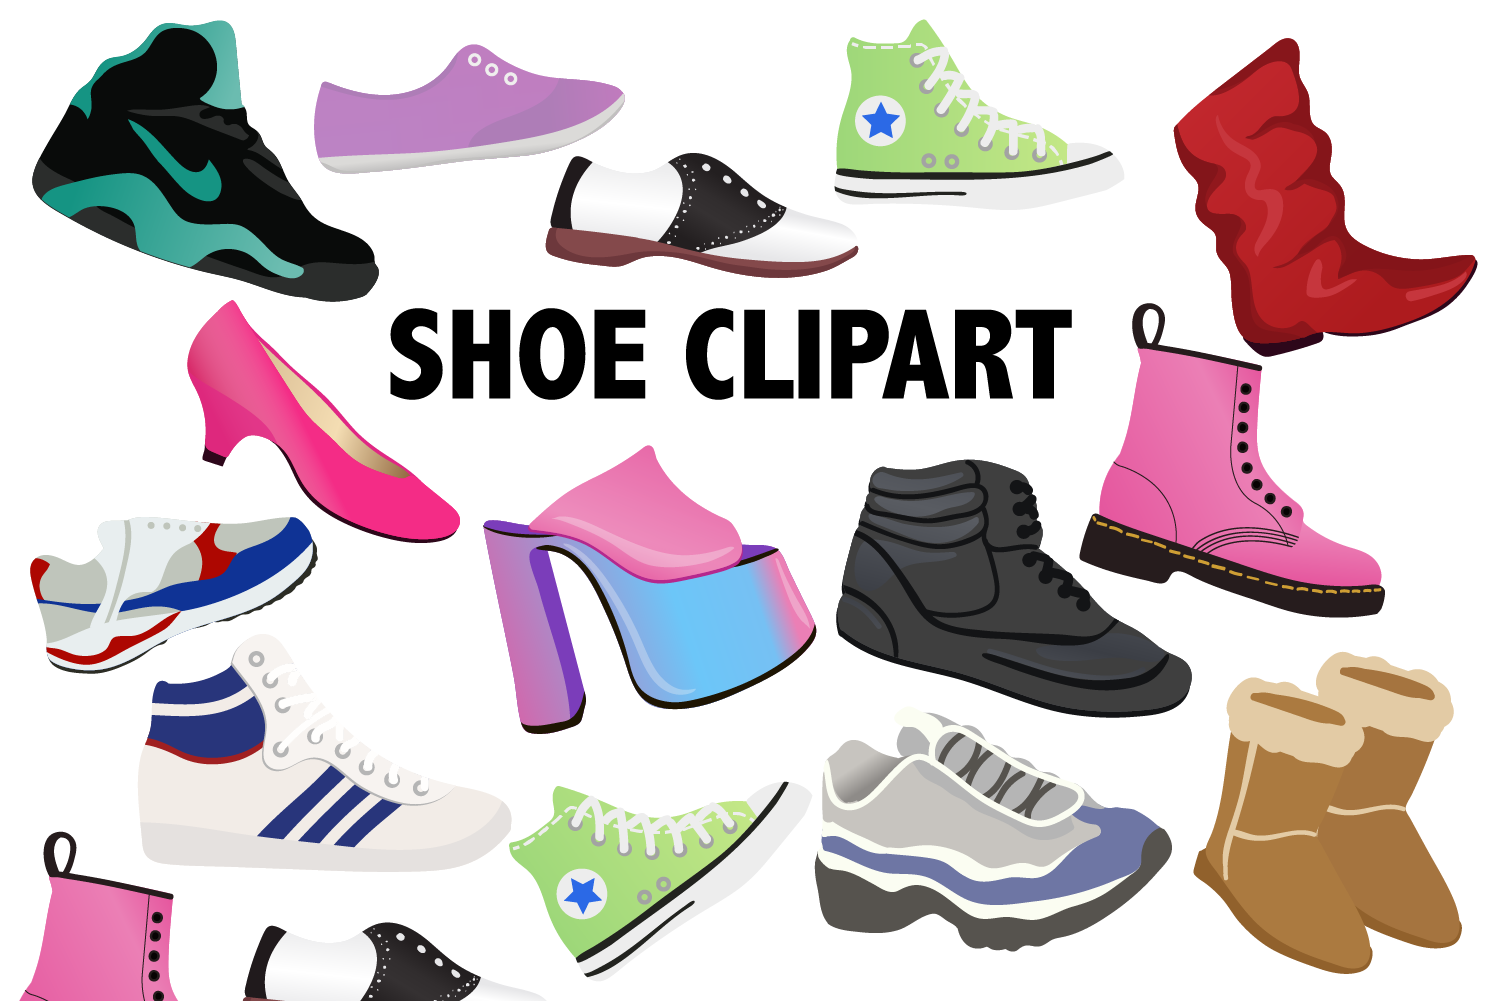 Download Free Shoe Clipart Graphic By Mine Eyes Design Creative Fabrica for Cricut Explore, Silhouette and other cutting machines.